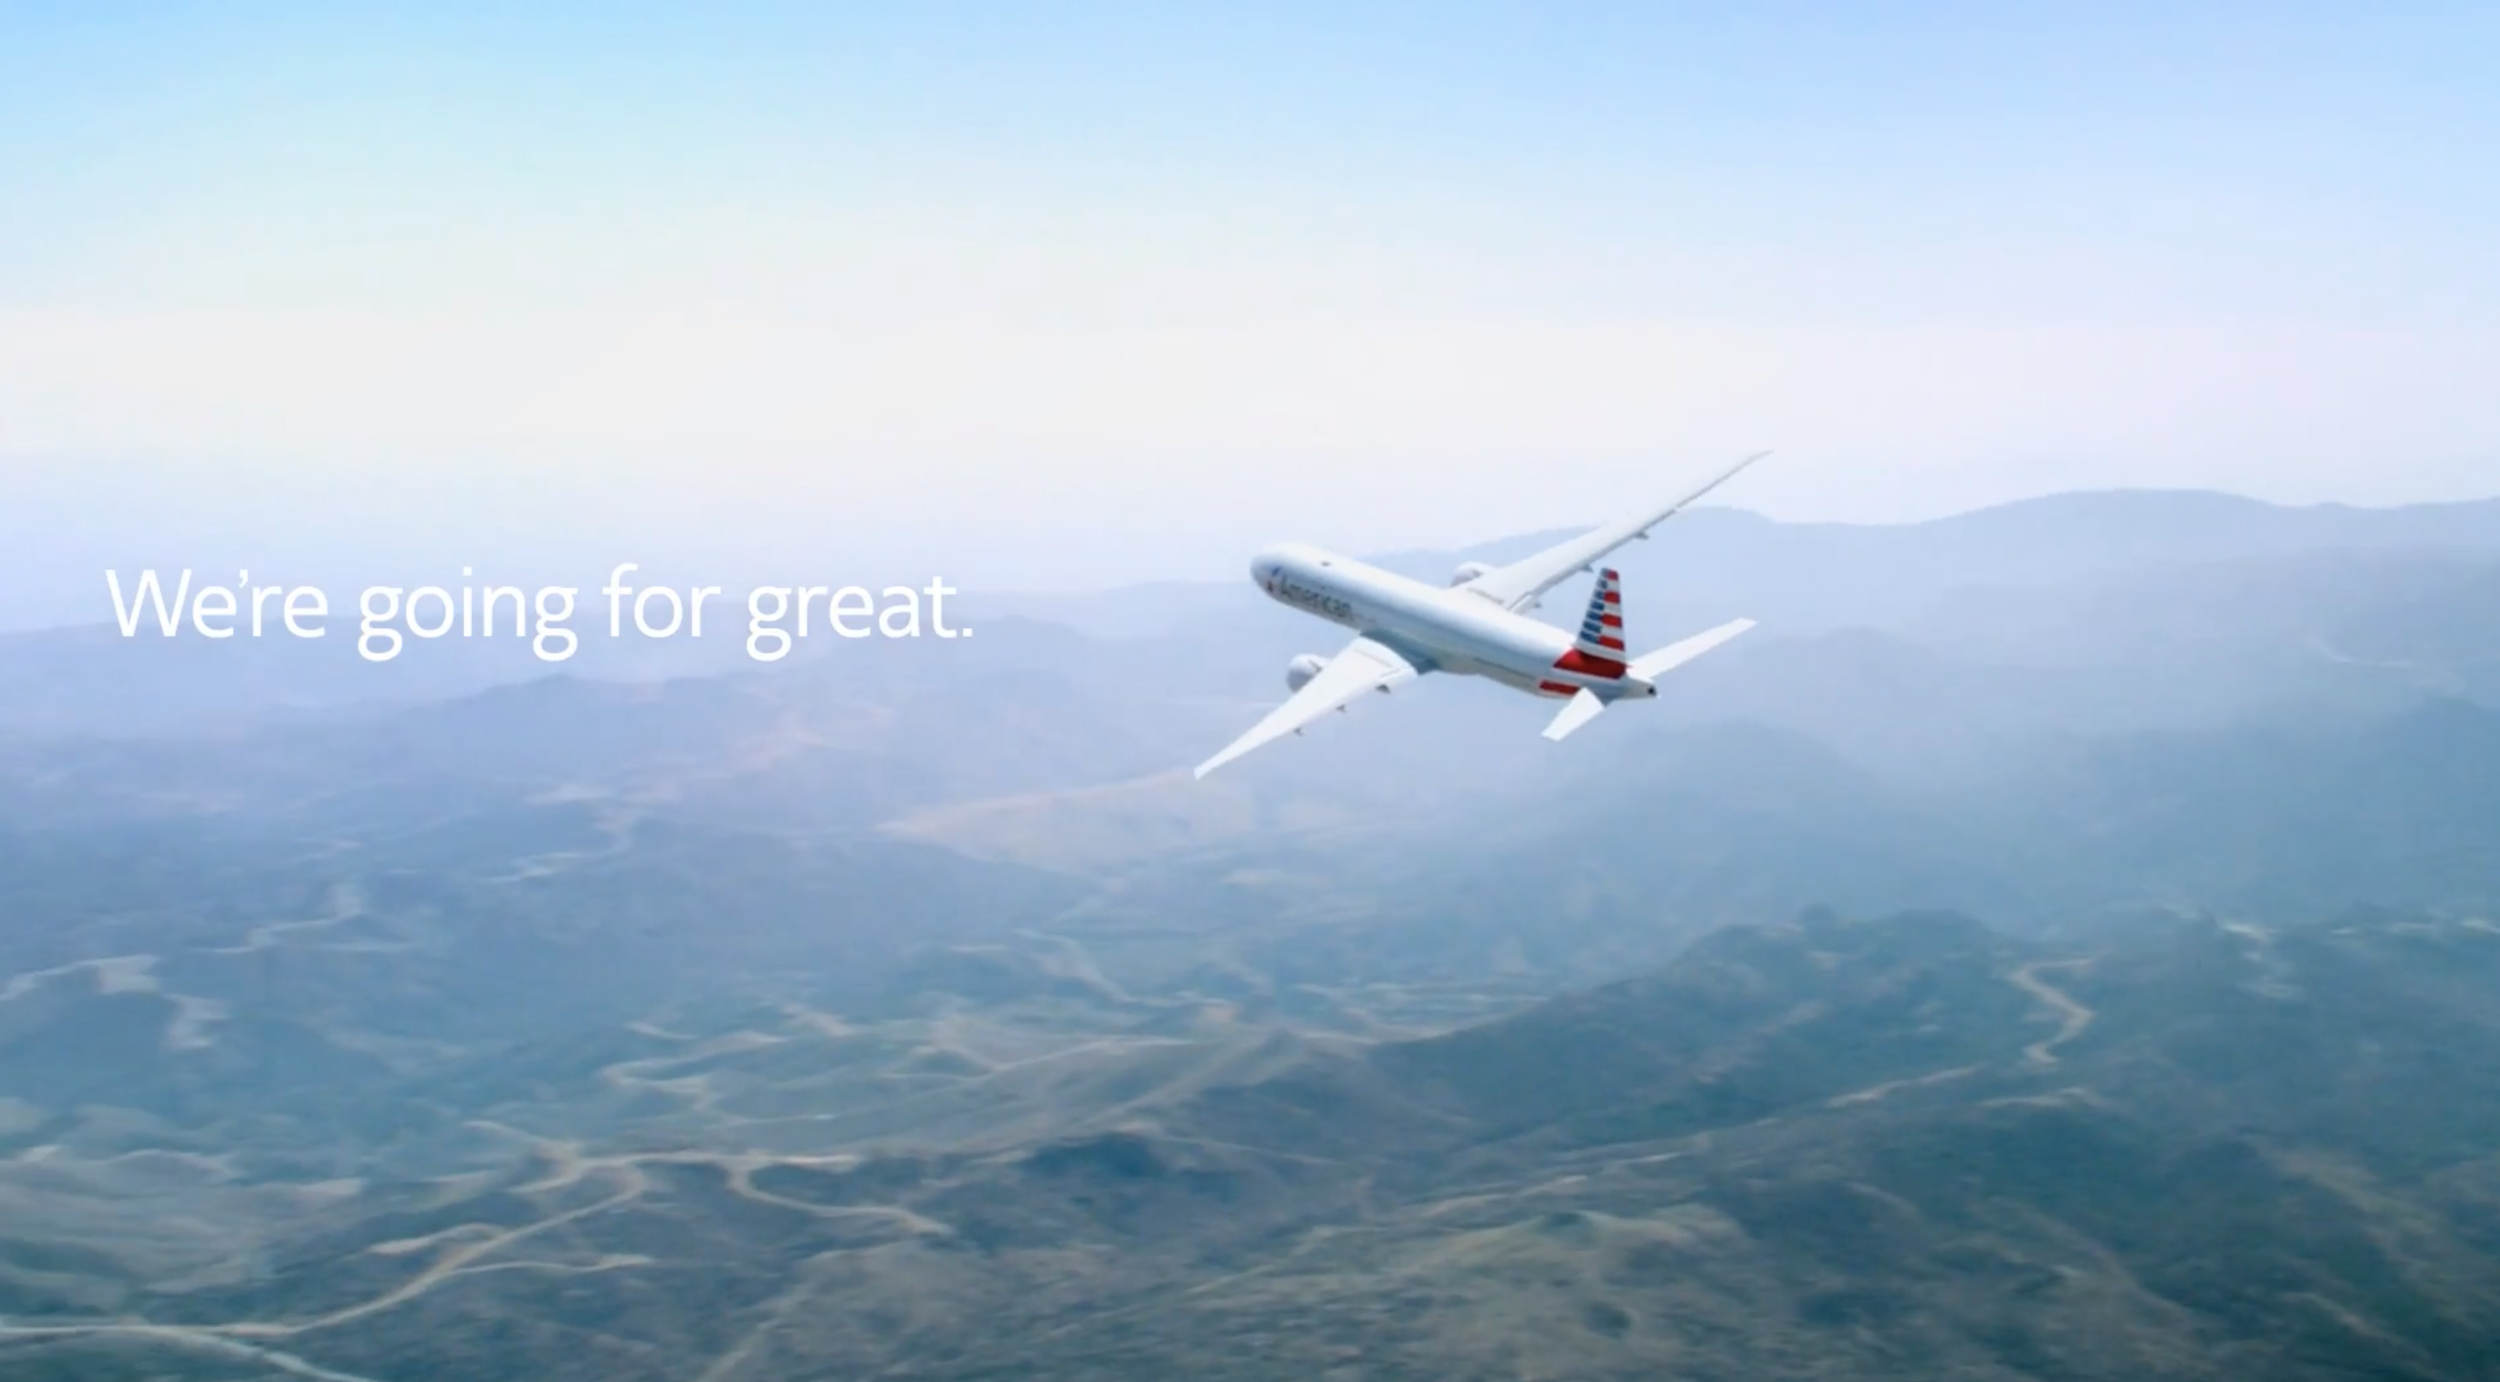 Going For Great   Client: American Airlines